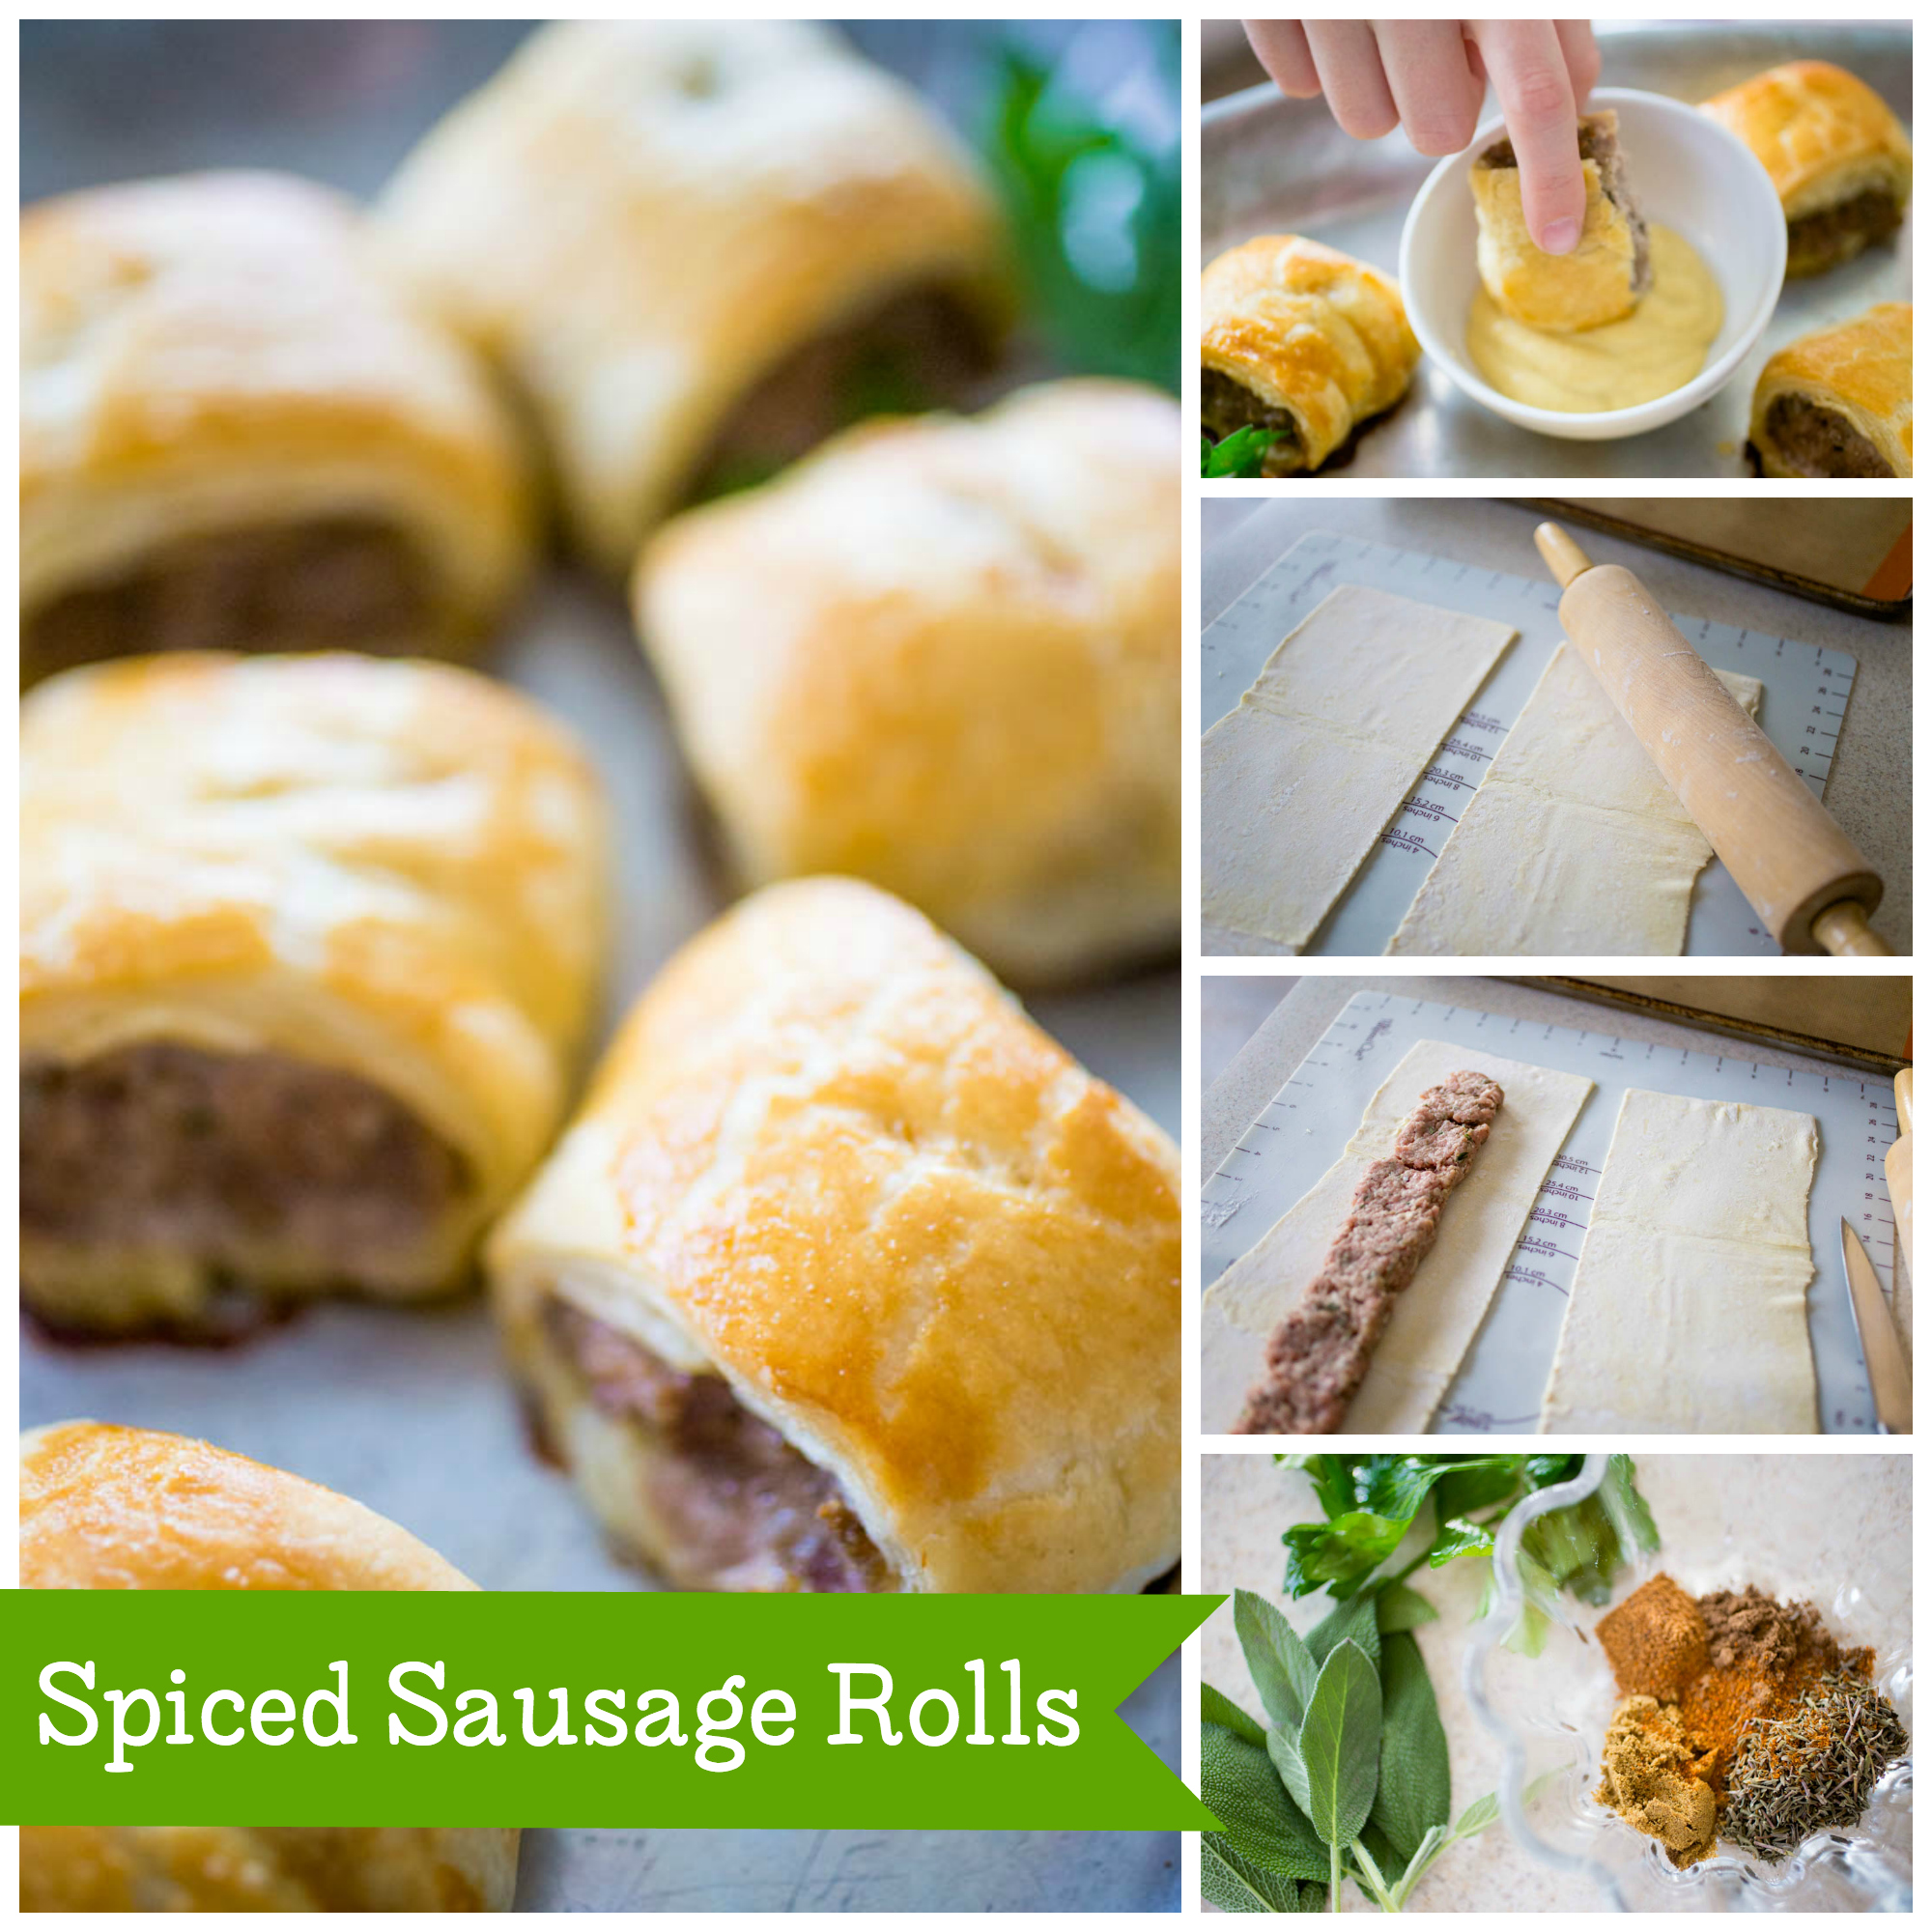 Easy sausage rolls recipe: Perfect for a party appetizer